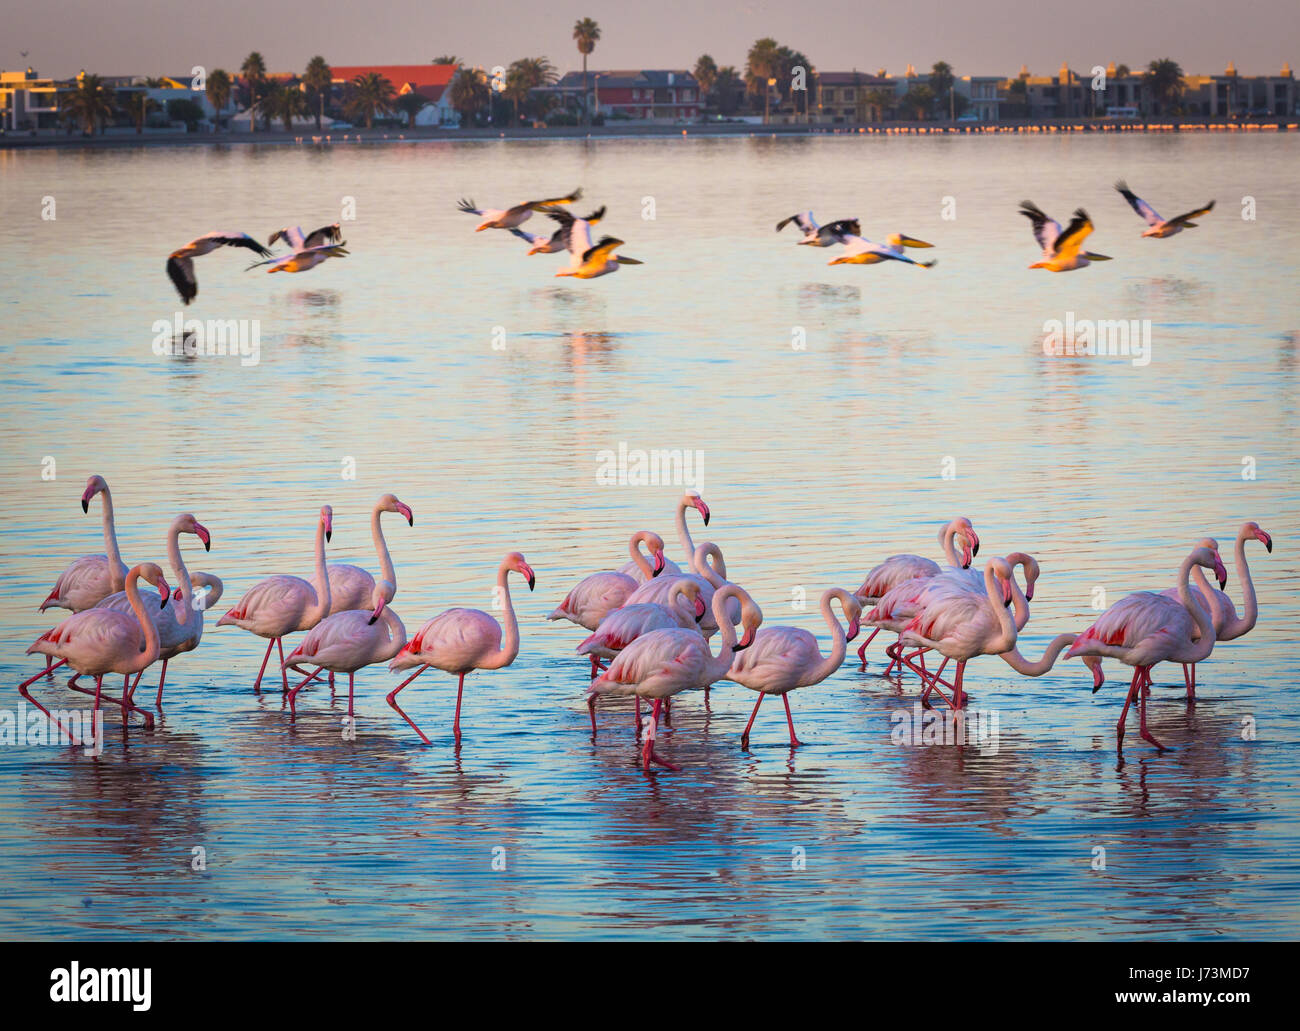 Flamingos are a type of wading bird in the genus Phoenicopterus, the only genus in the family Phoenicopteridae. - Stock Image